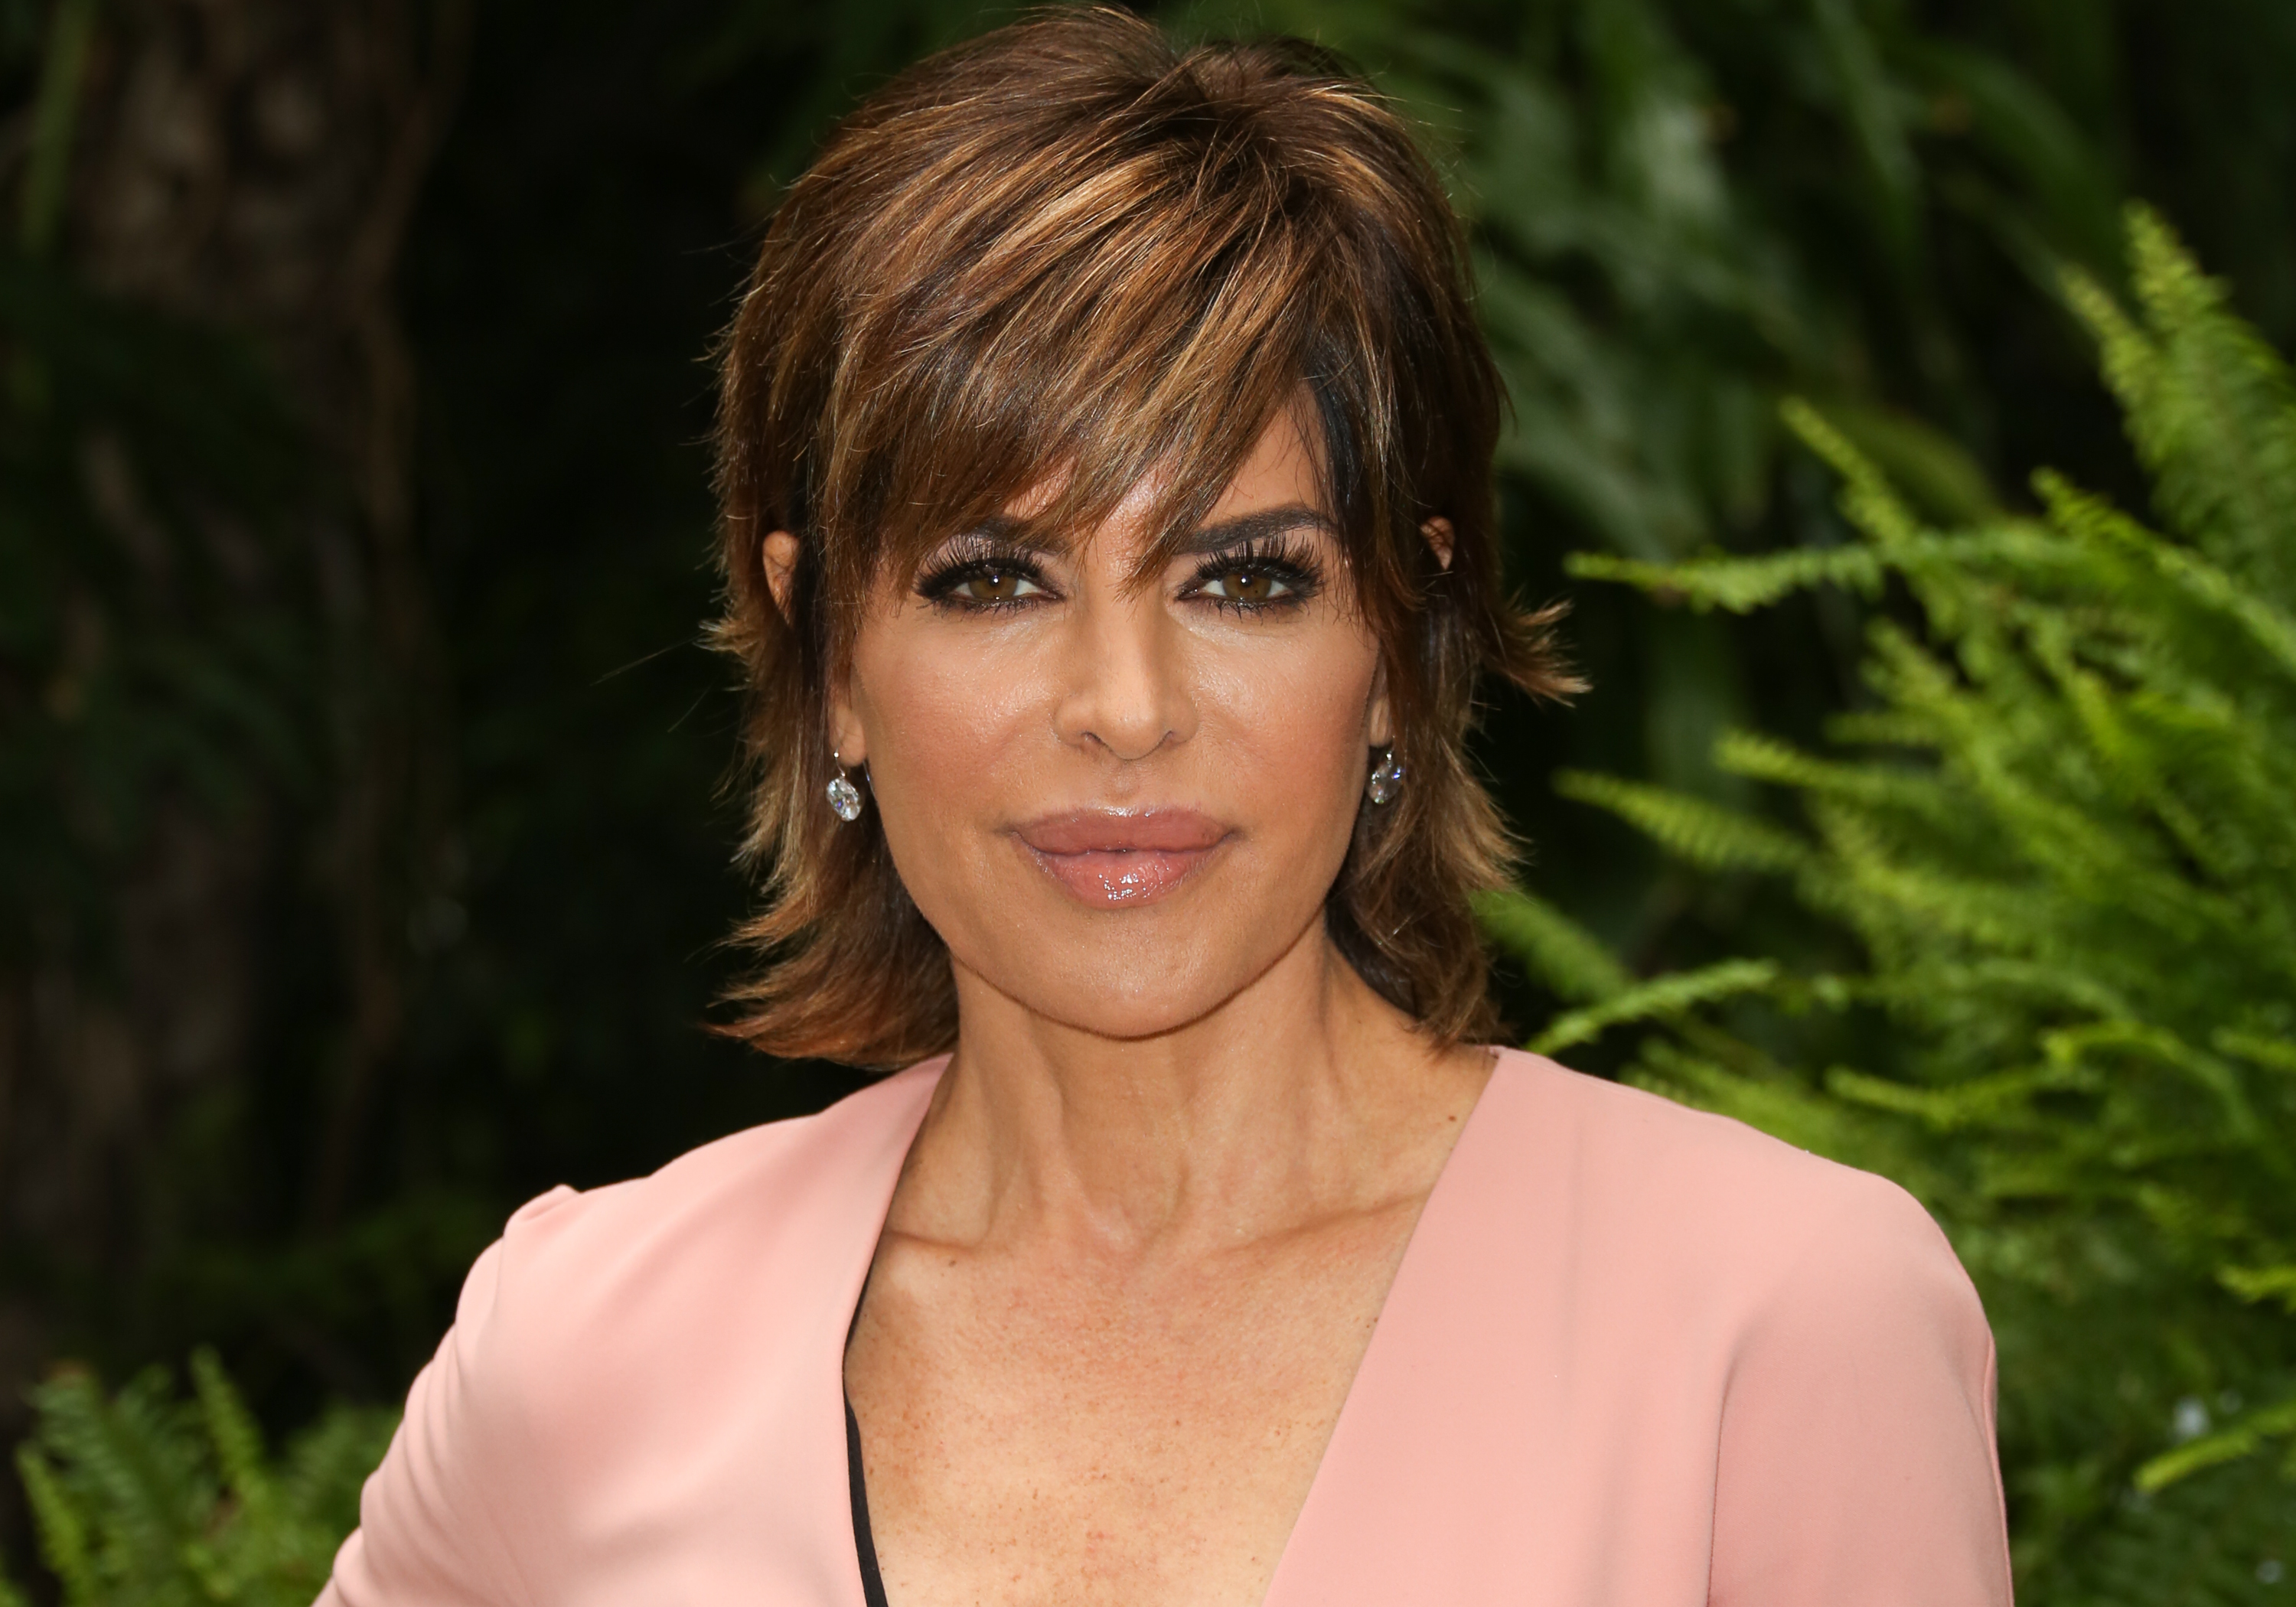 Days Of Our Lives News: Lisa Rinna Returns To Days Of Our Lives!